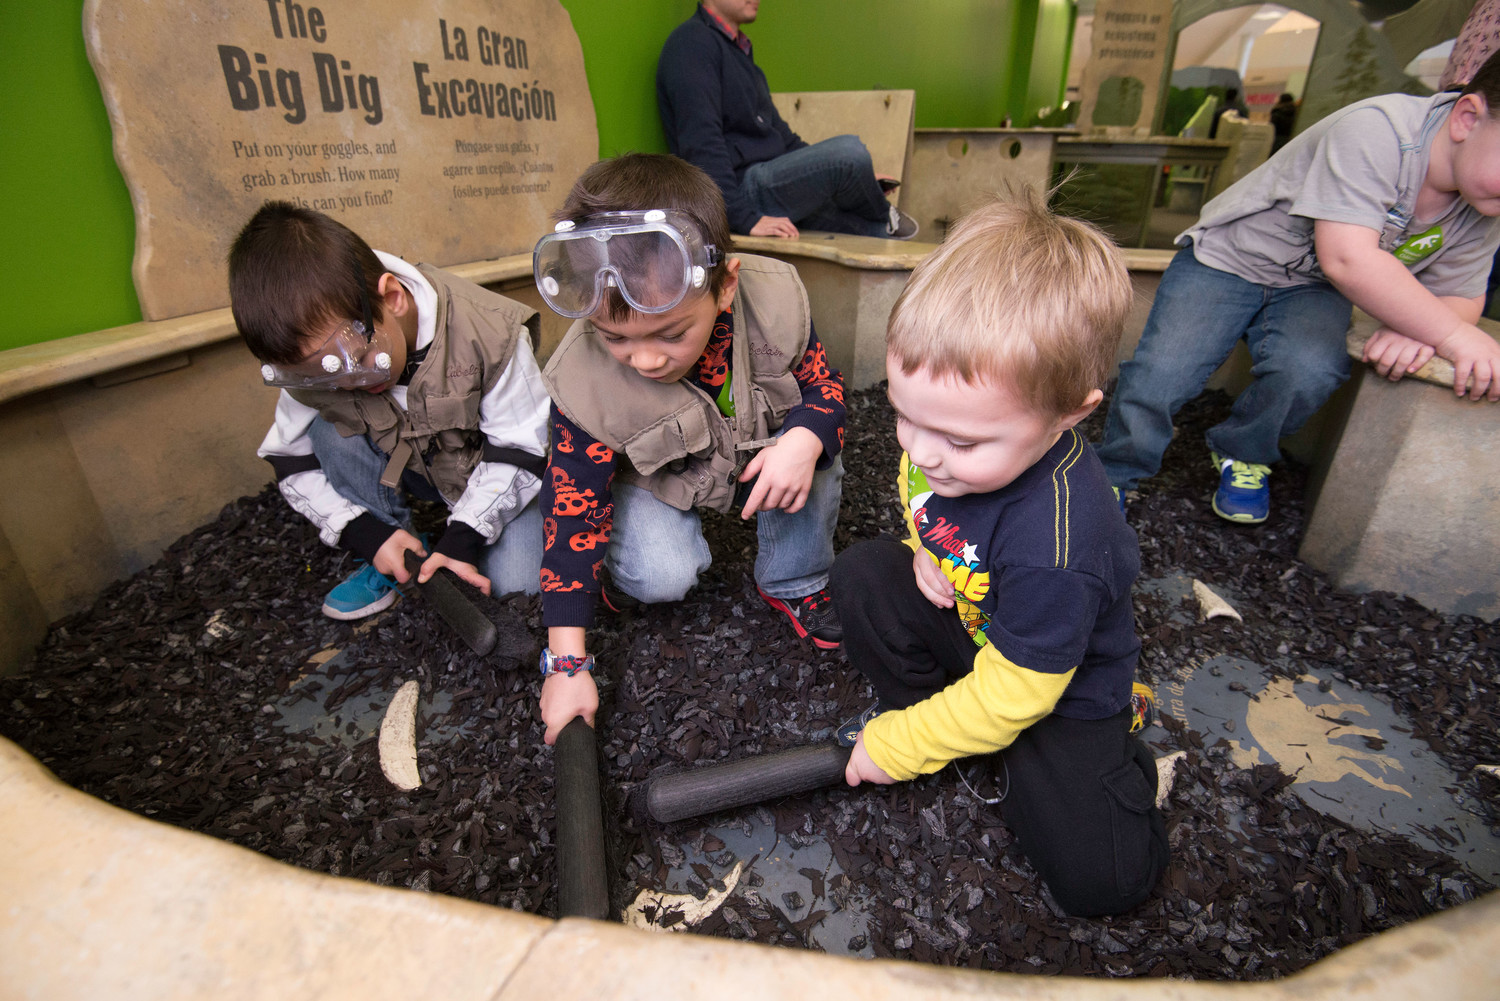 Museum visitors become junior paleontologists as they put on goggles and research vests and search for fossils at the bottom of the dig pit.